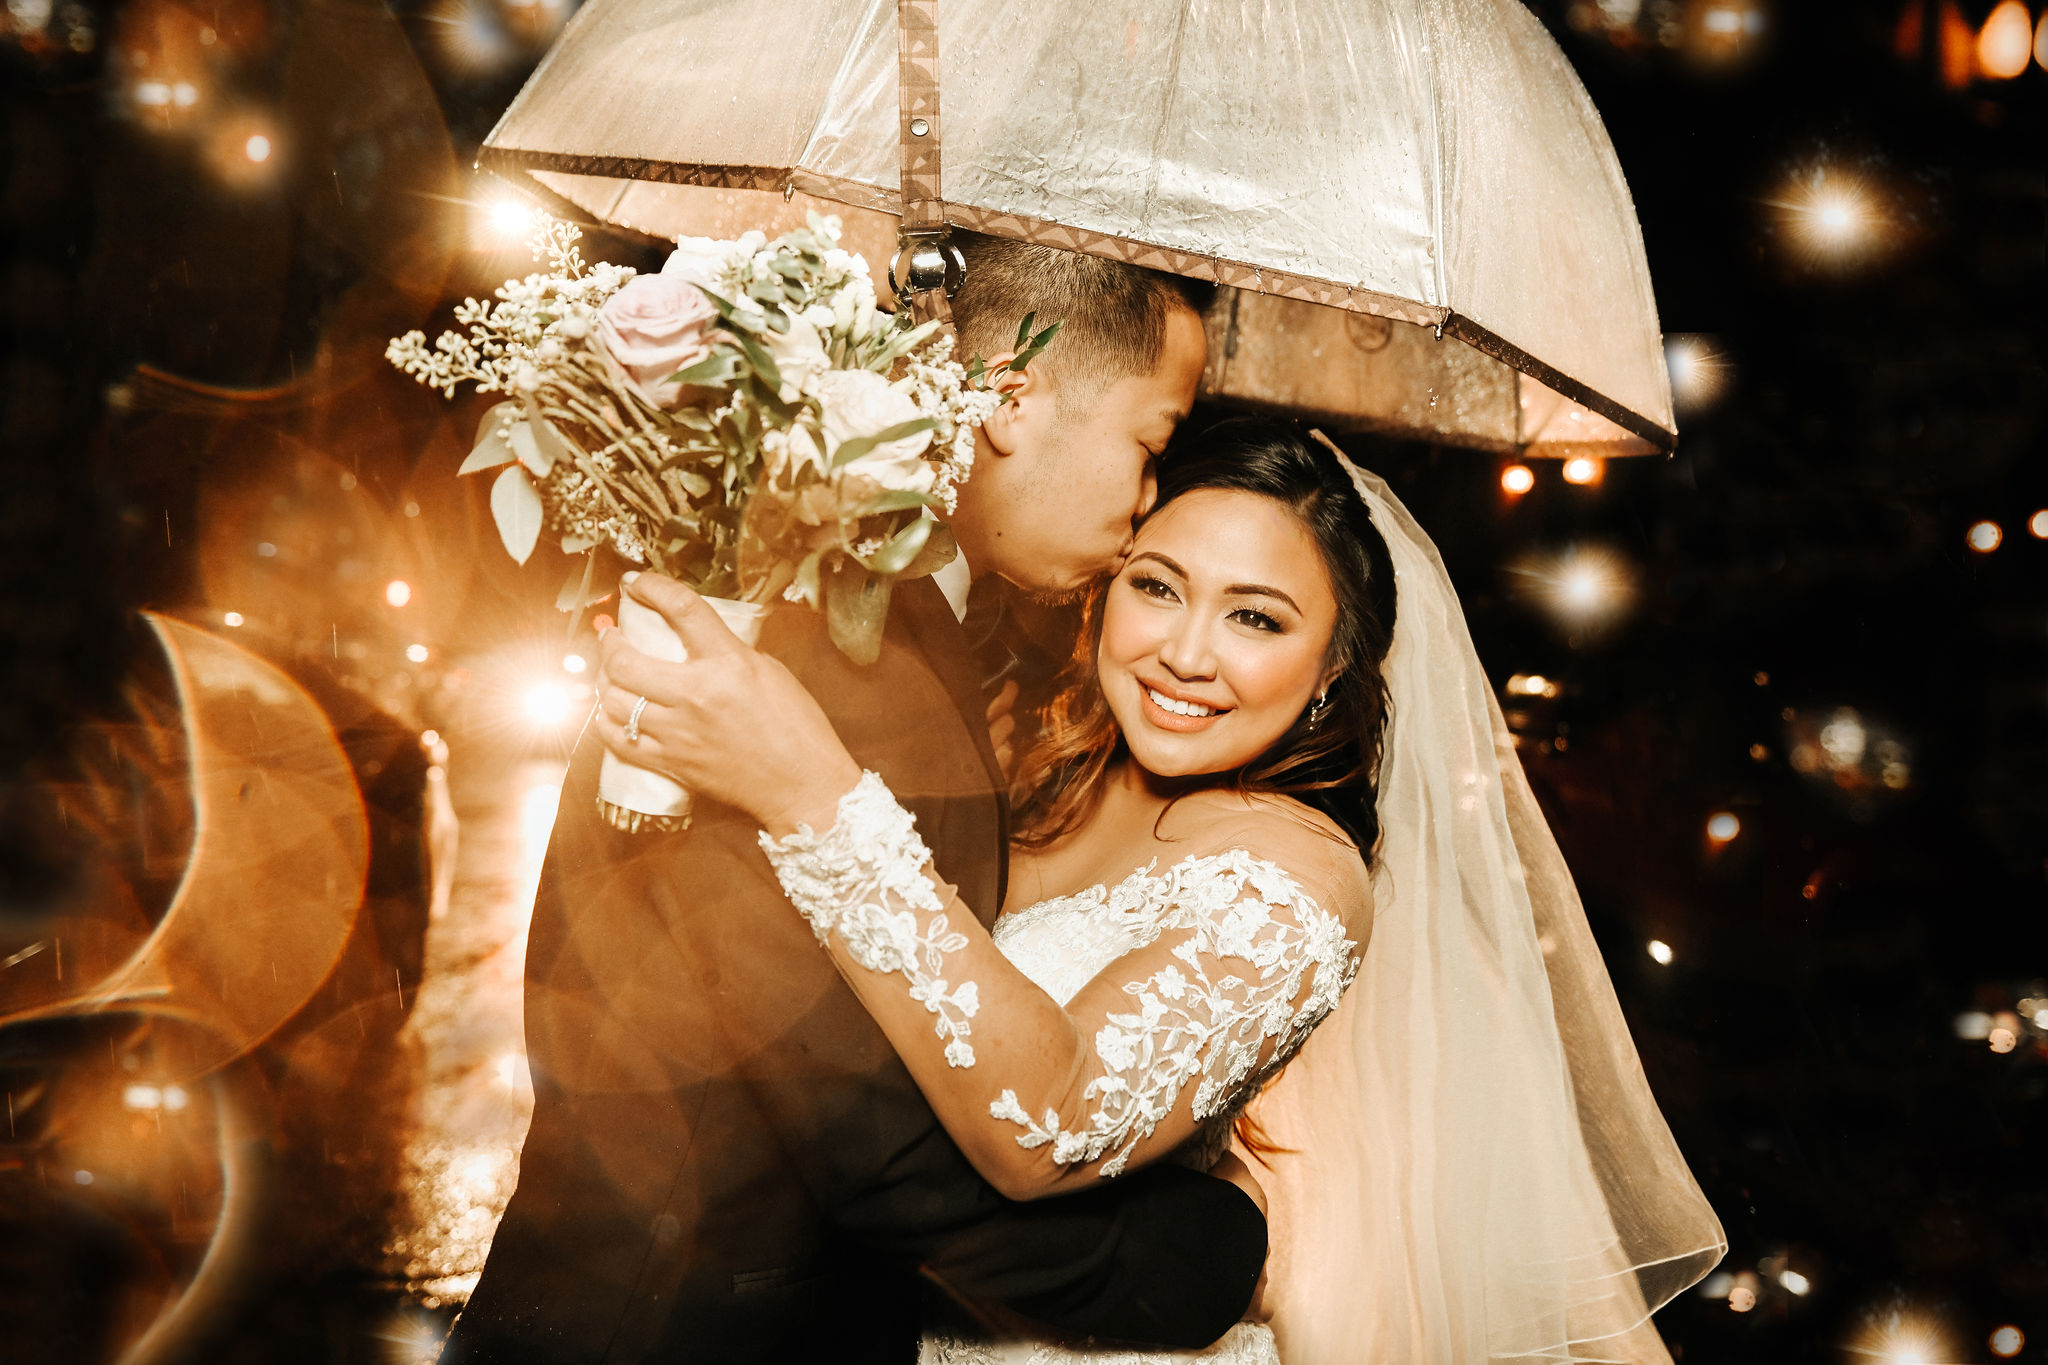 Karen & Calvin - The rain didn't put a damper on this beautiful New York City wedding. Click here to read more about Karen and Calvin's big day.